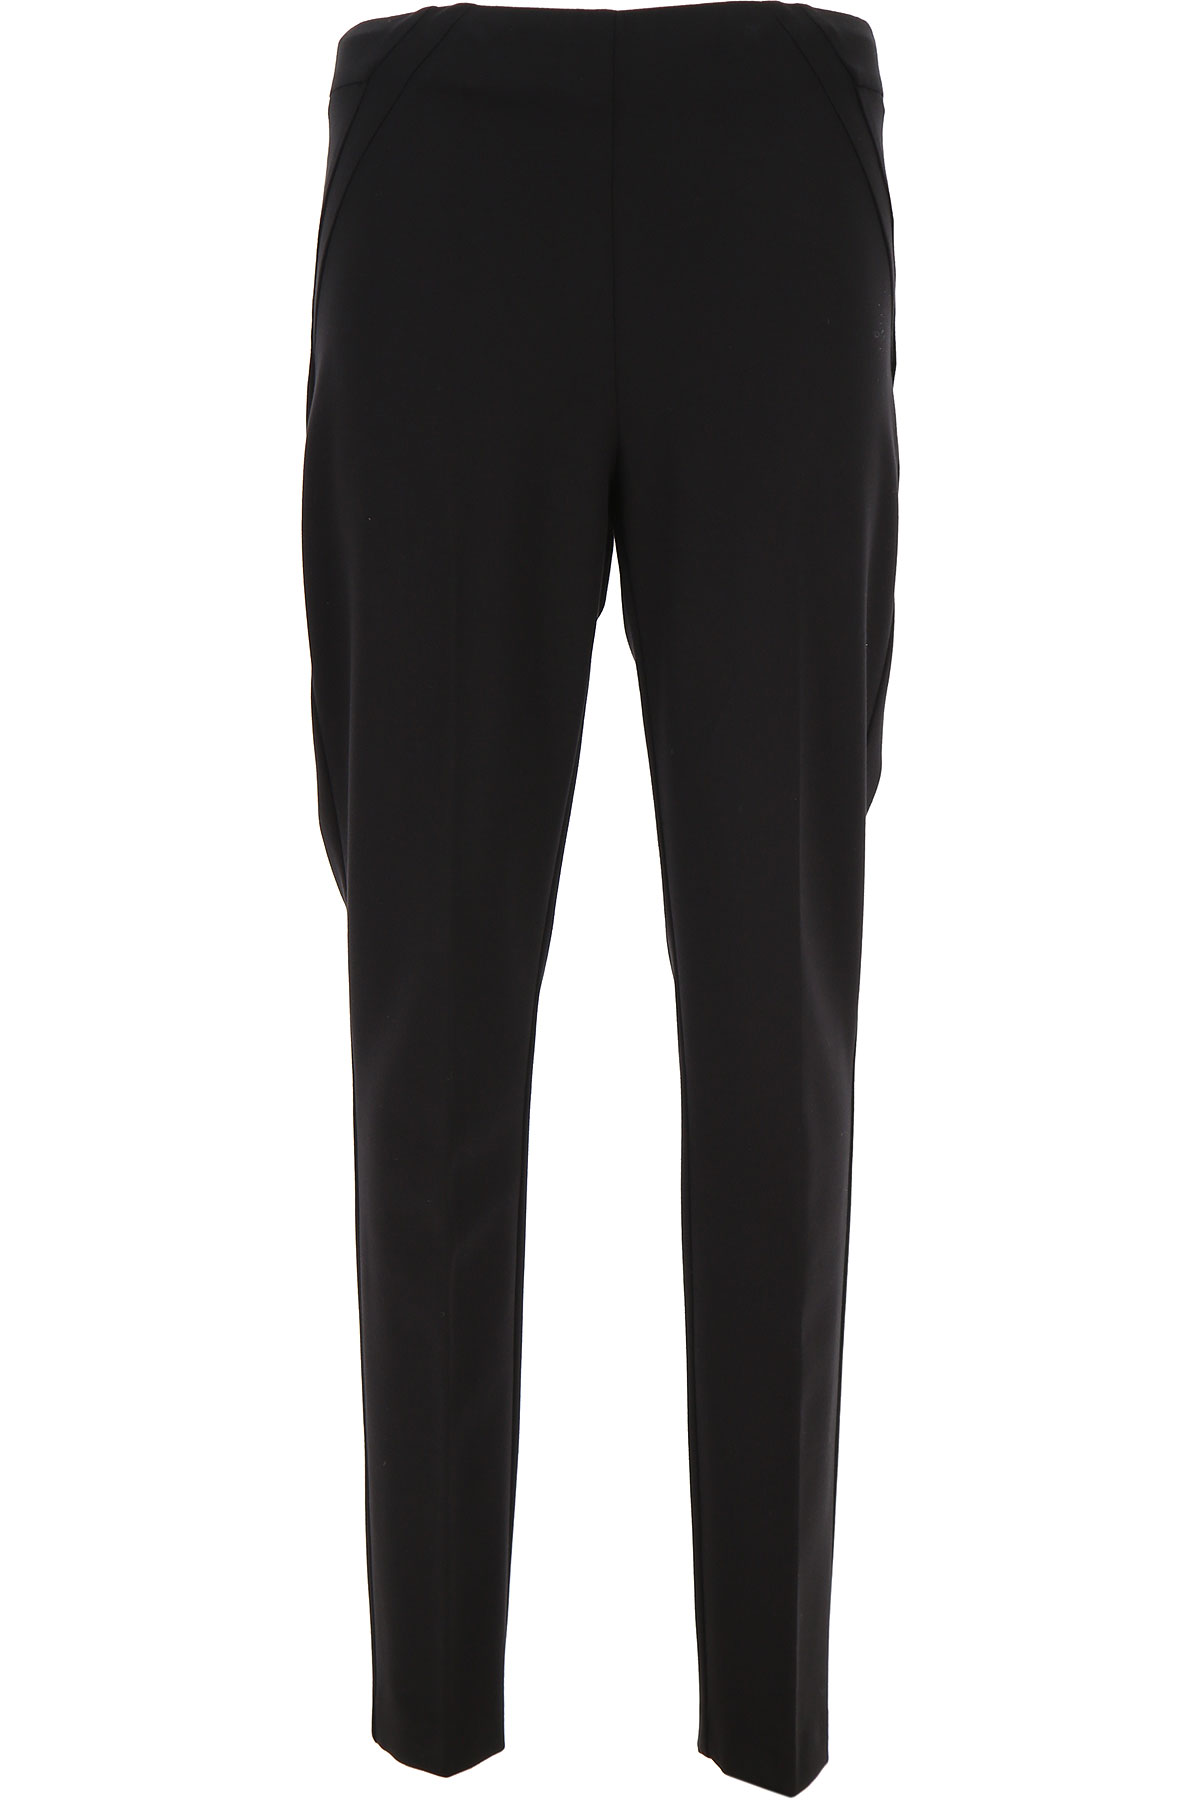 Joseph Ribkoff Pants for Women On Sale, Black, polyestere, 2019, US 36 -- EU 50 US 38 -- EU 52 US 40 - EU 54 USA 12 -- IT 46